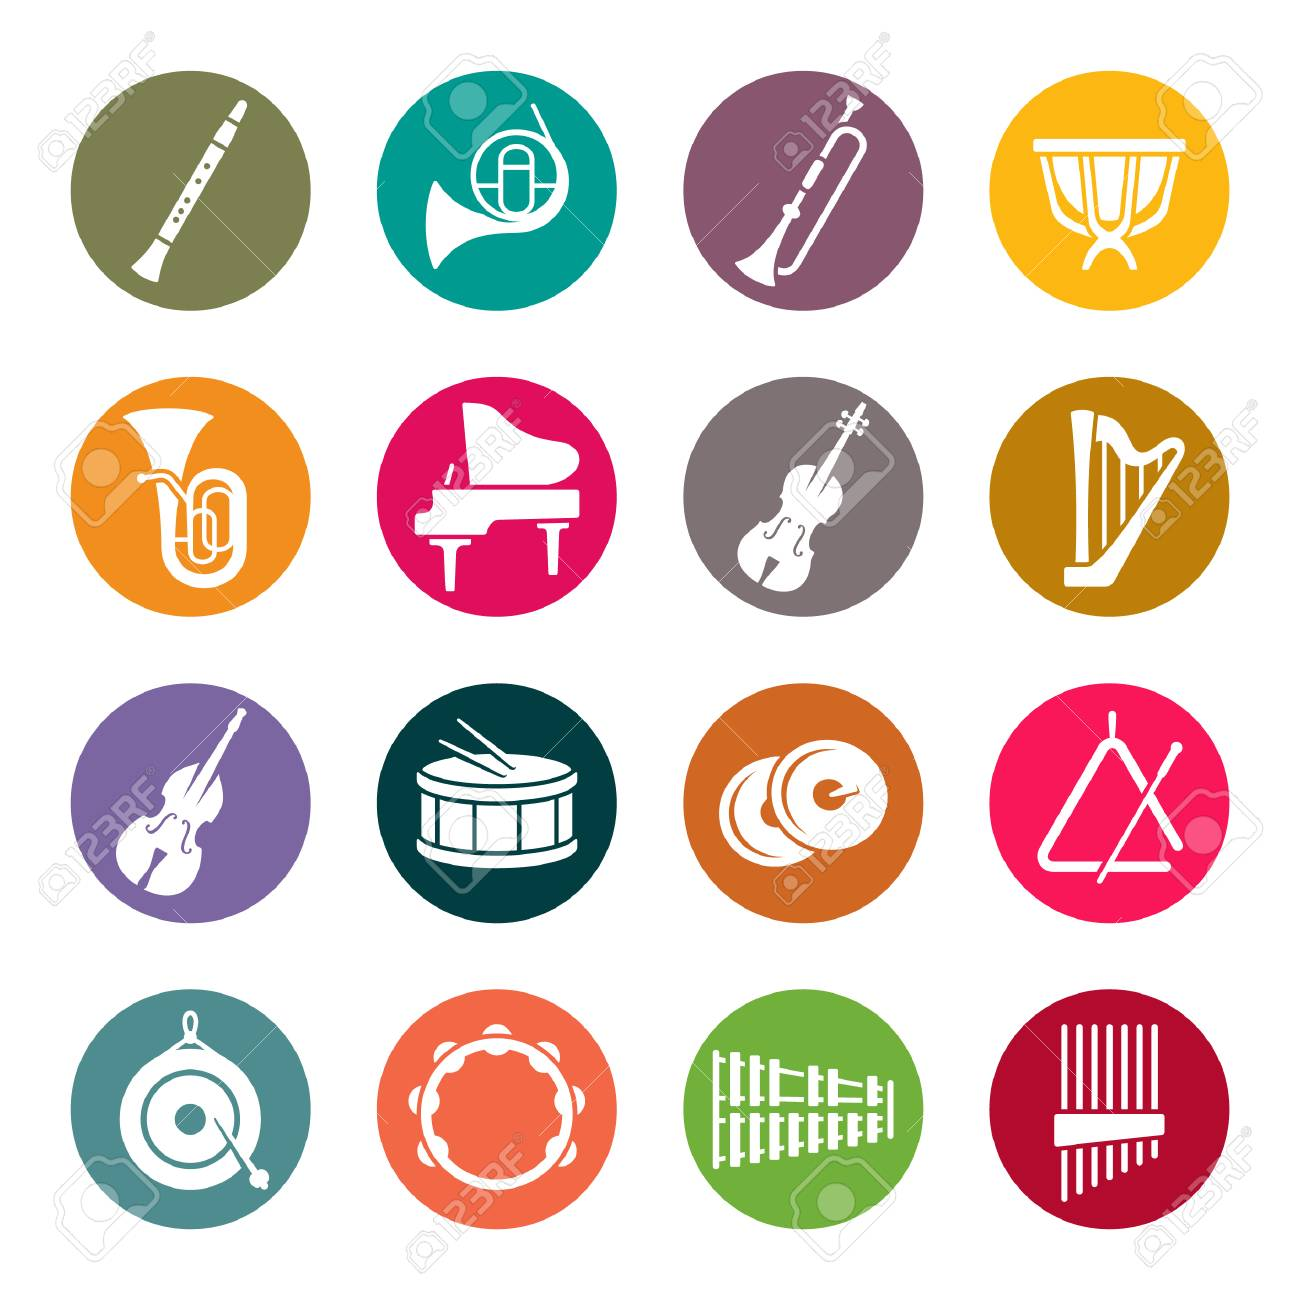 Orchestra instruments colourful icons - 98262482